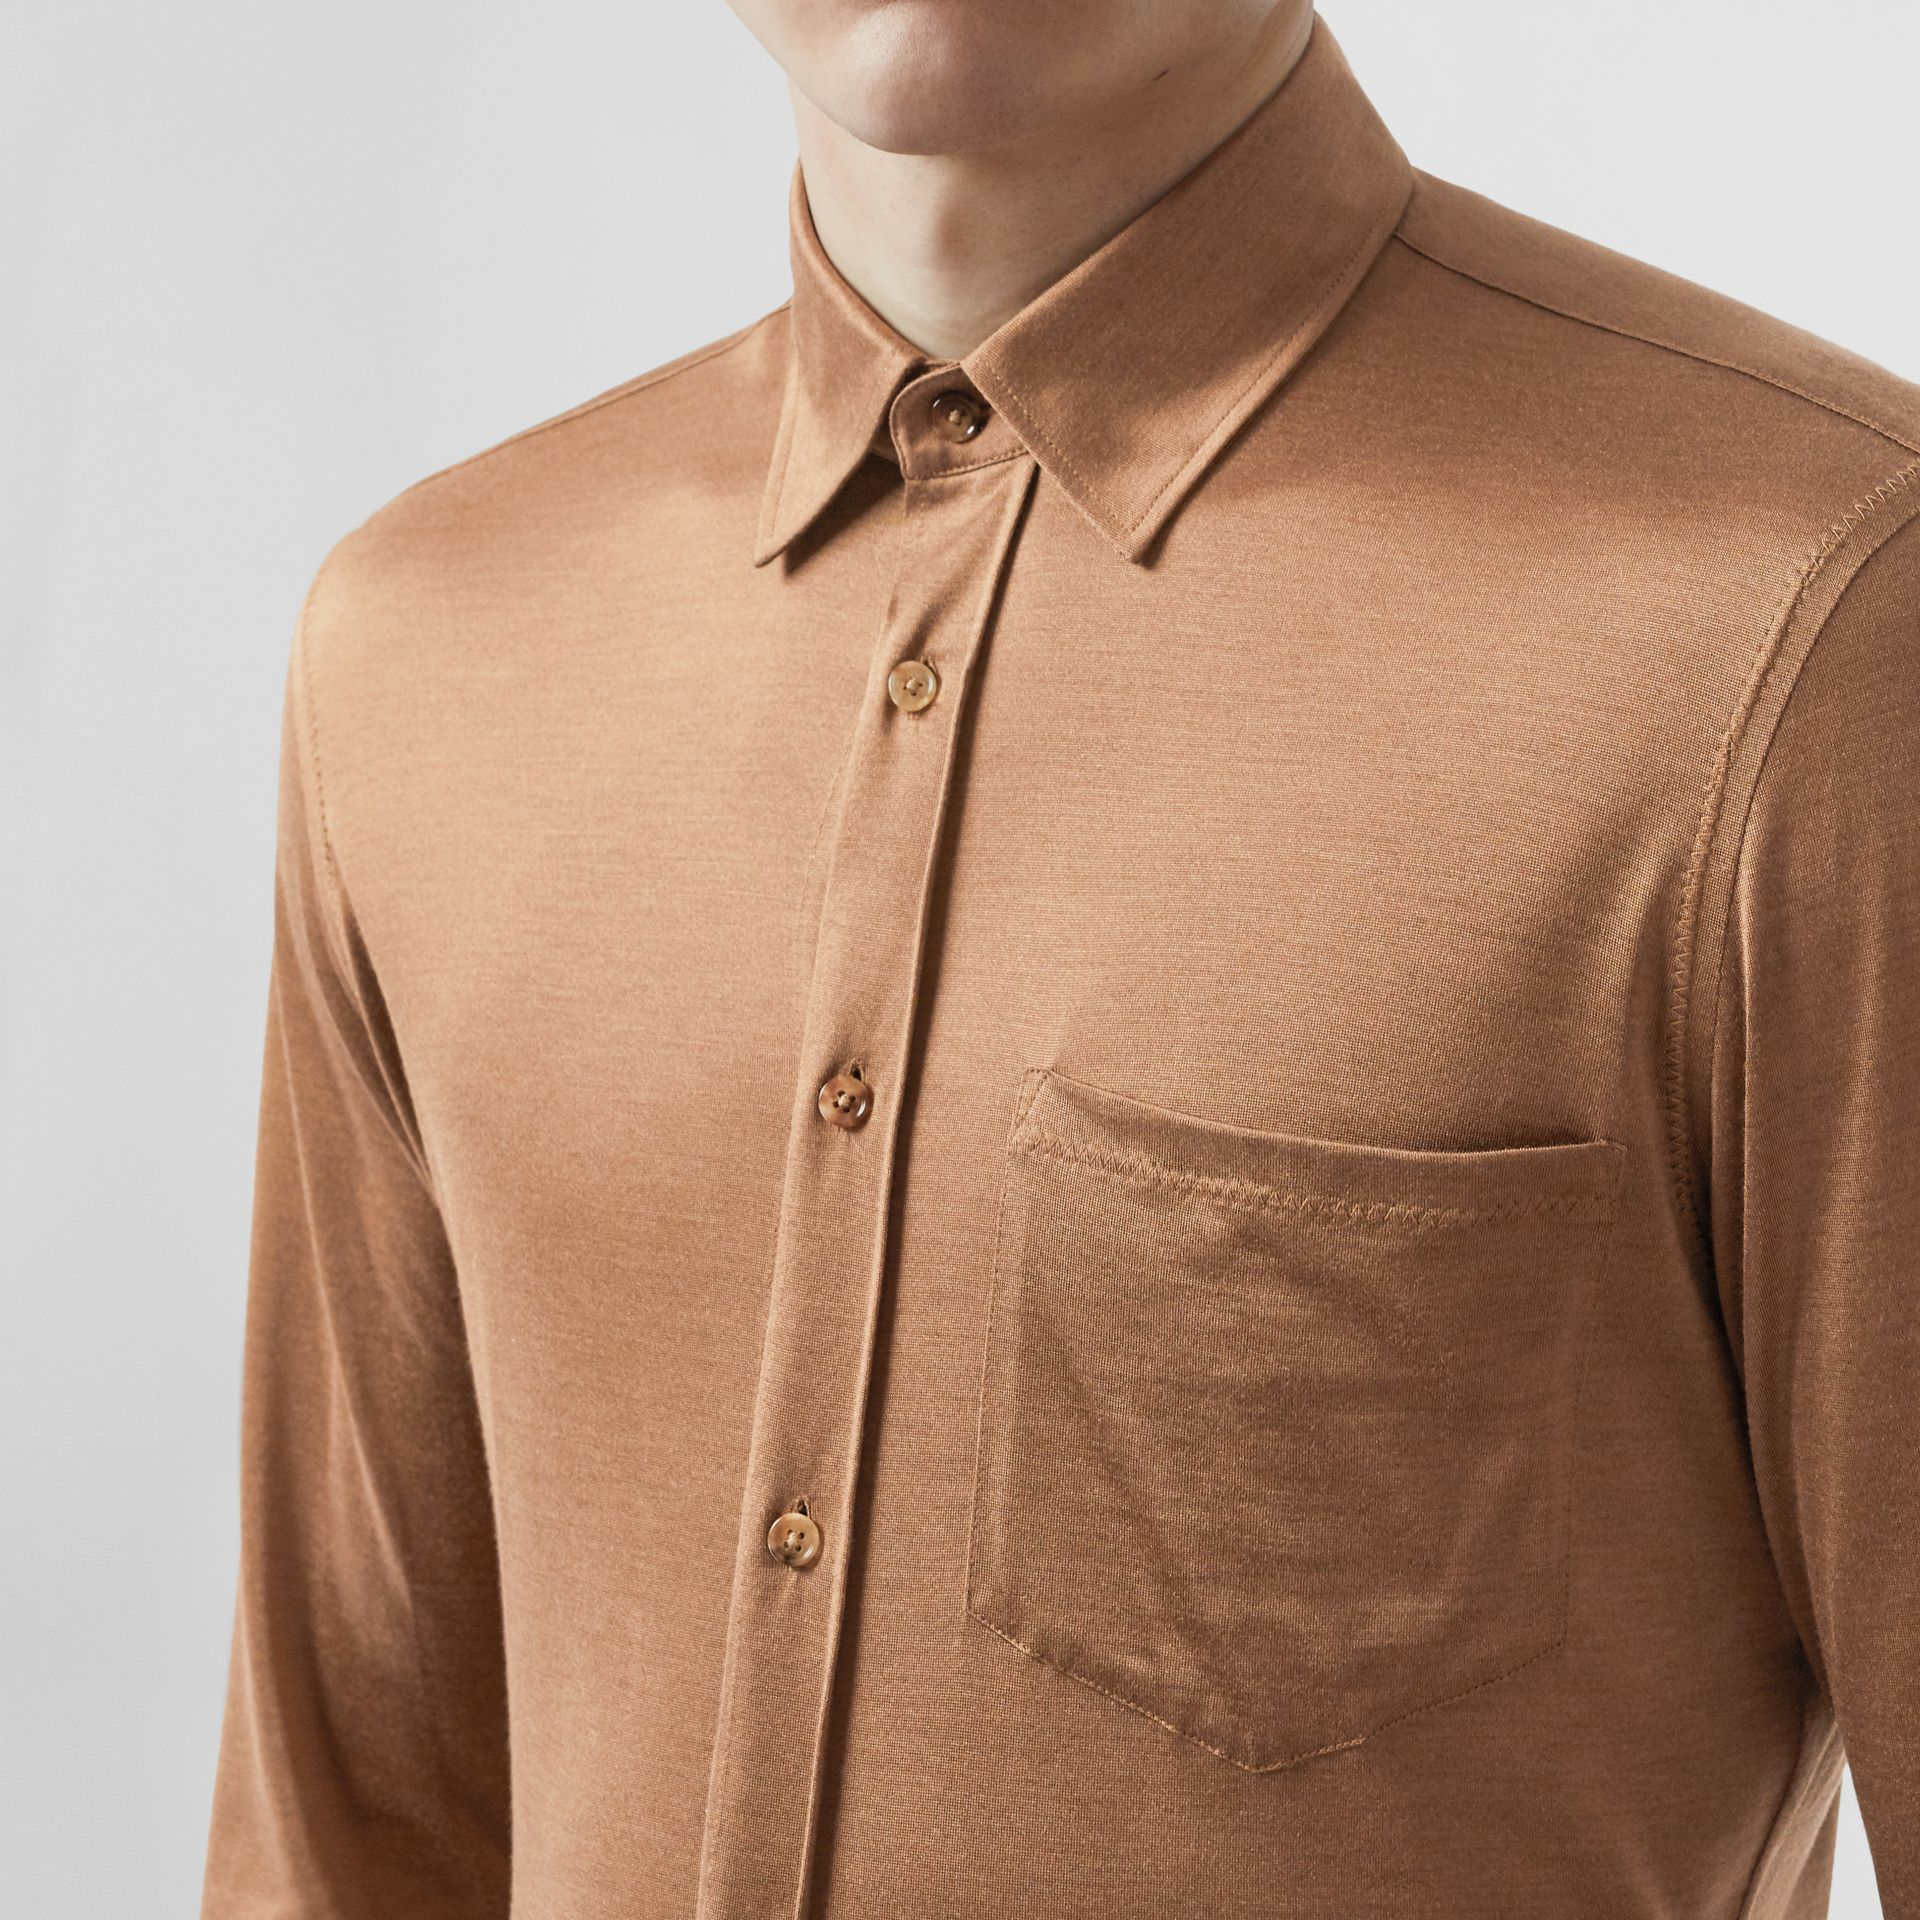 Classic Fit Silk Jersey Shirt in Warm Camel - Men | Burberry United States - gallery image 1